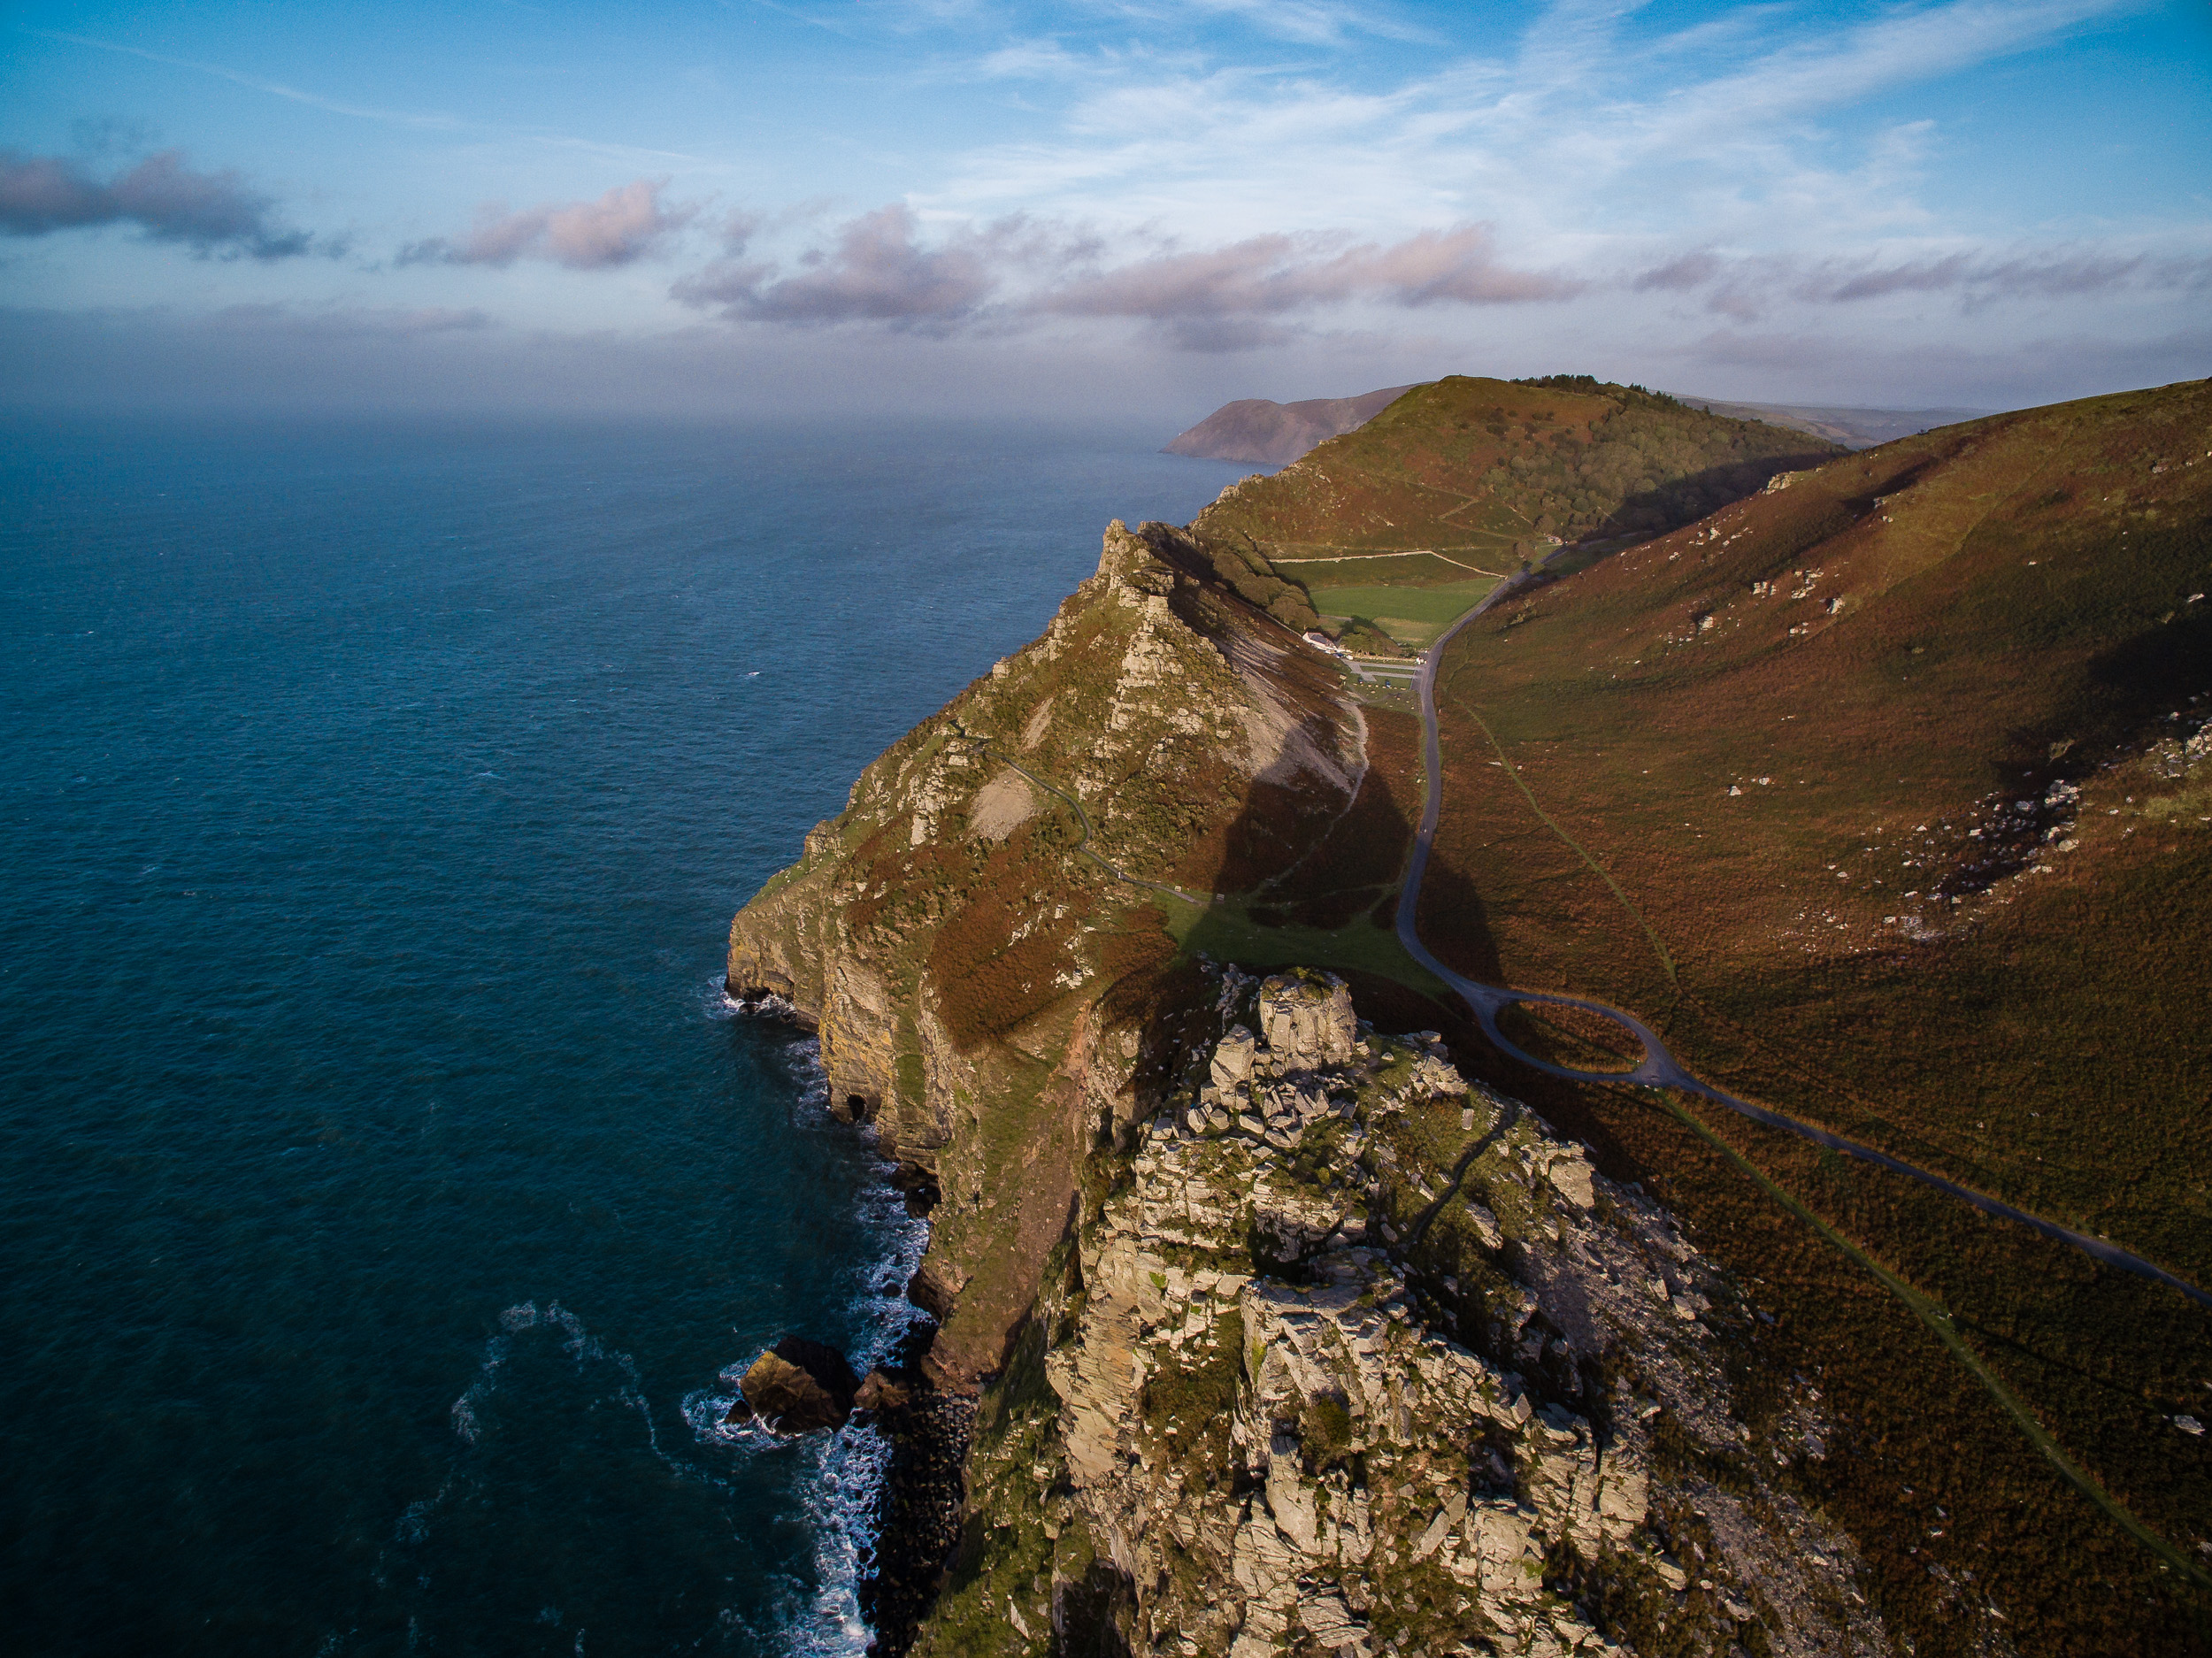 20160927-The Valley of the Rocks.jpg